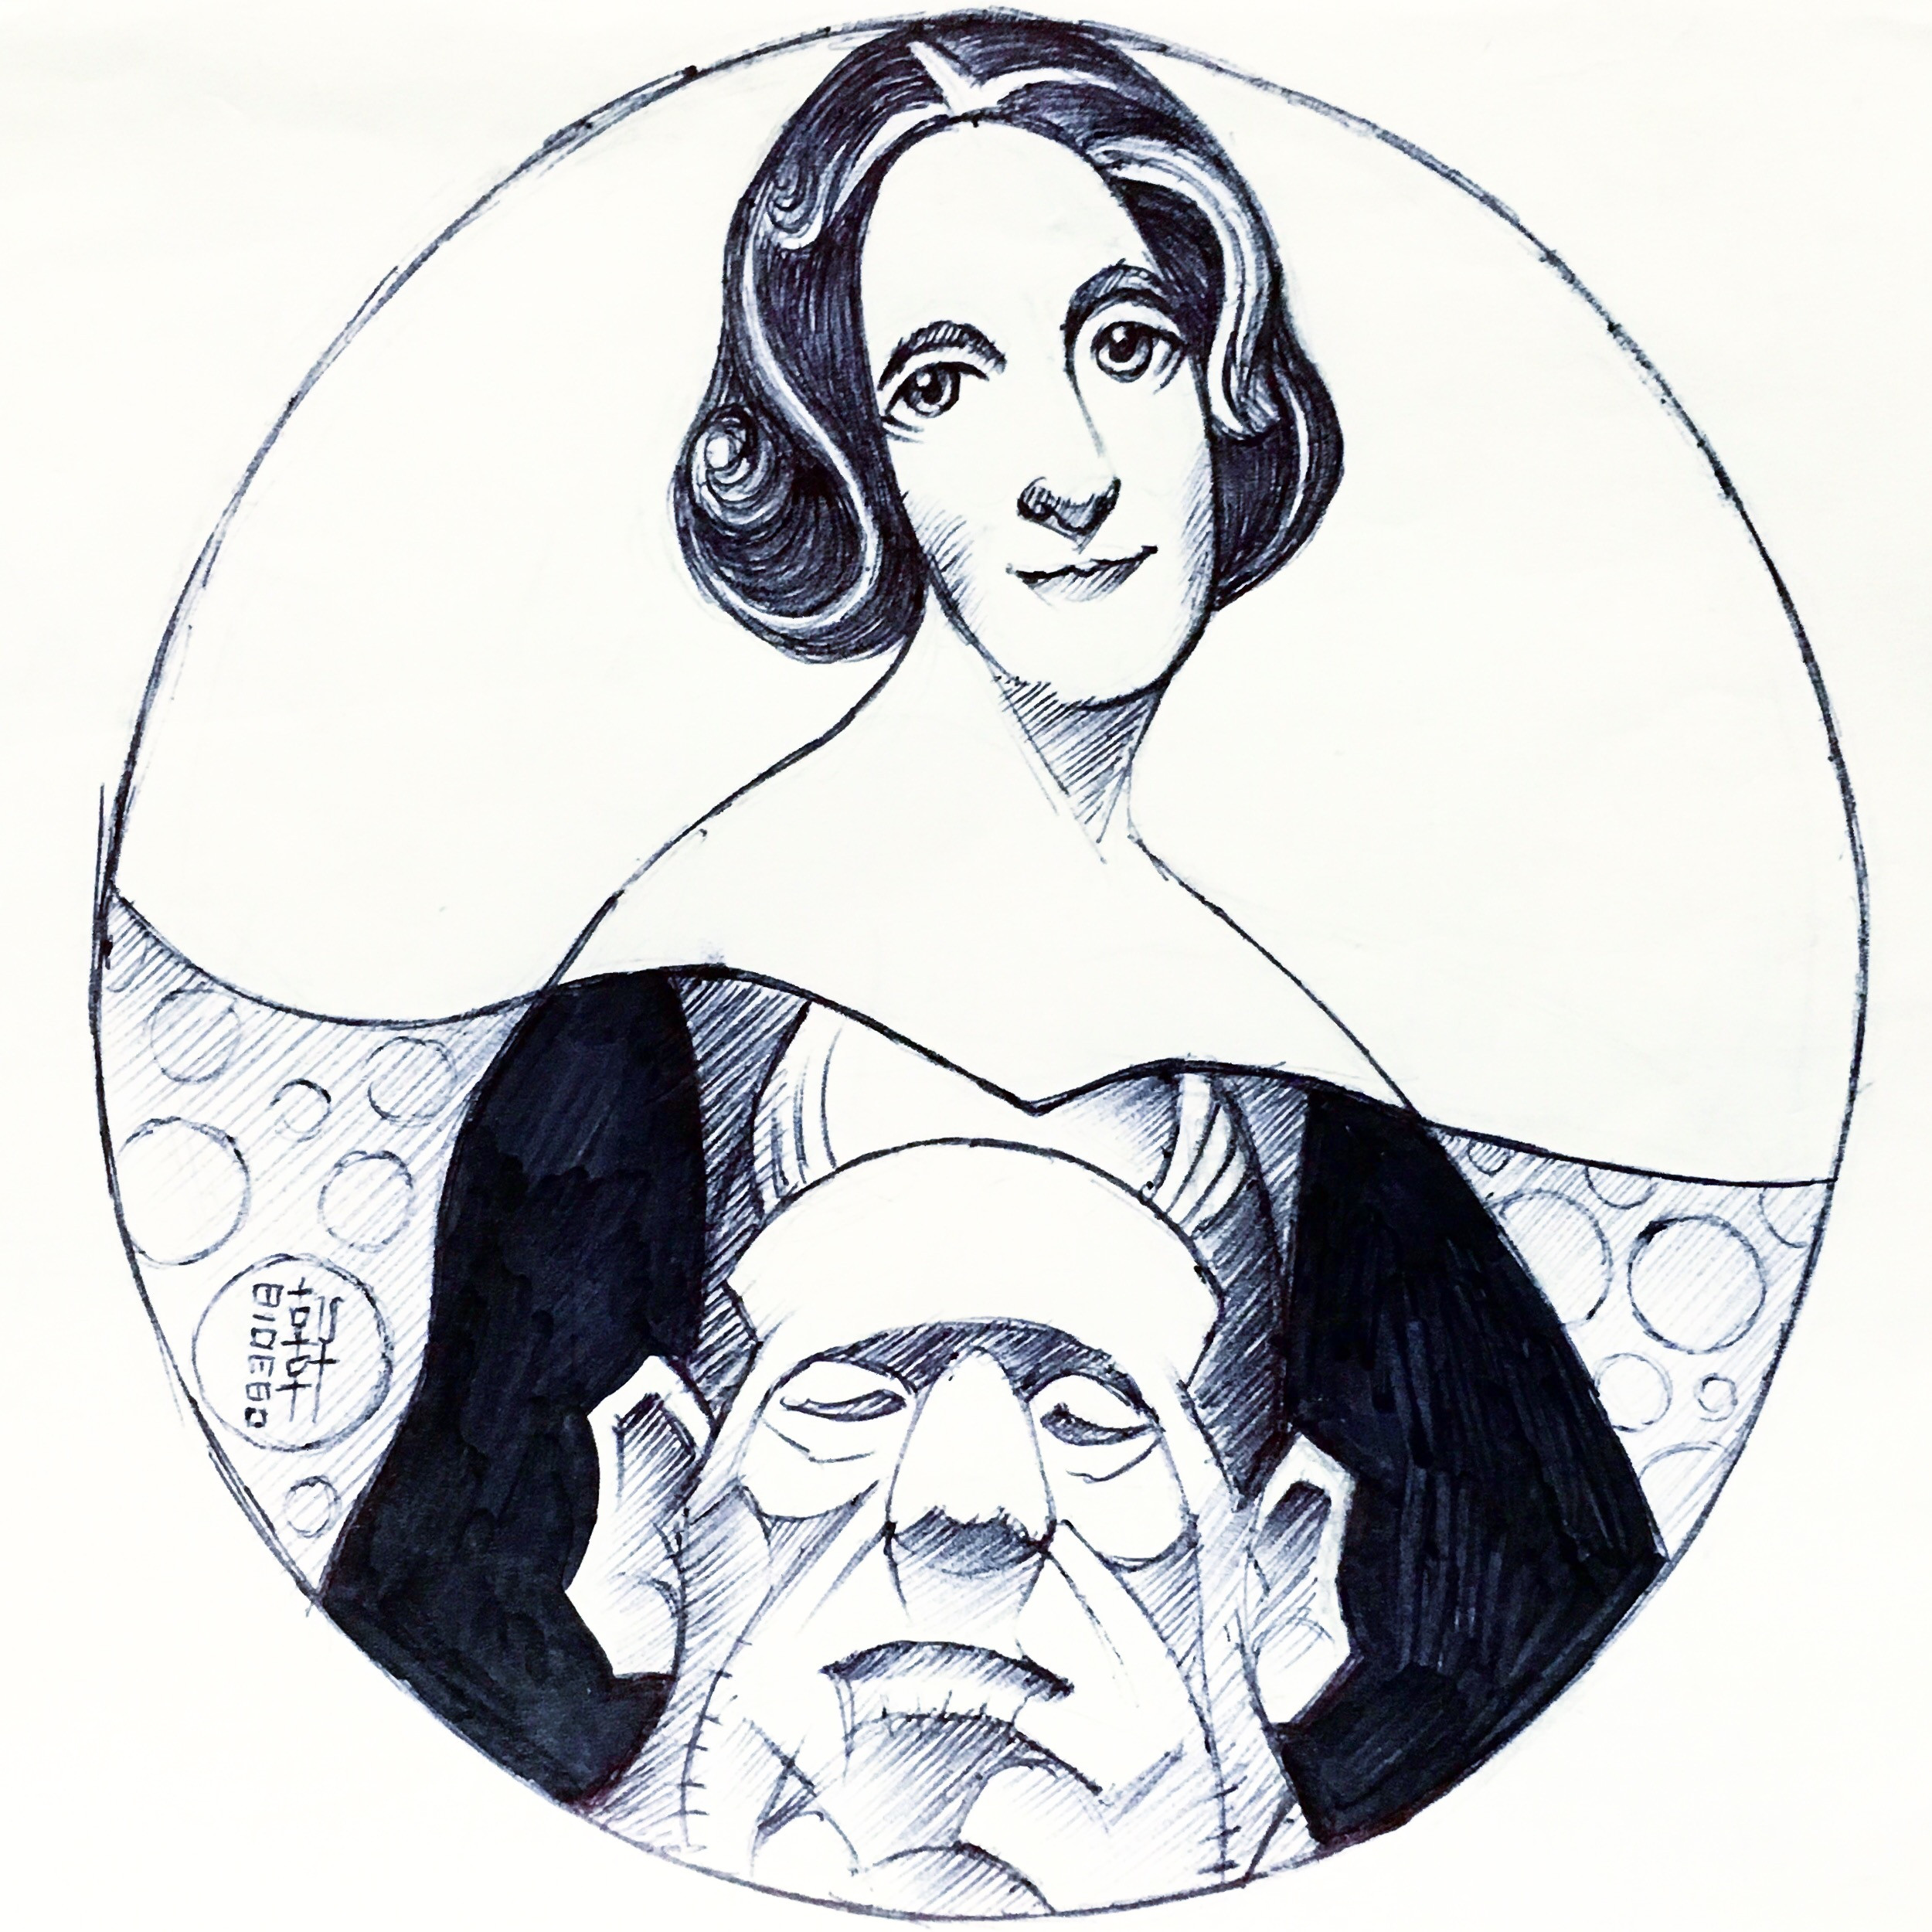 Day 08-30-18 - Mary Shelley